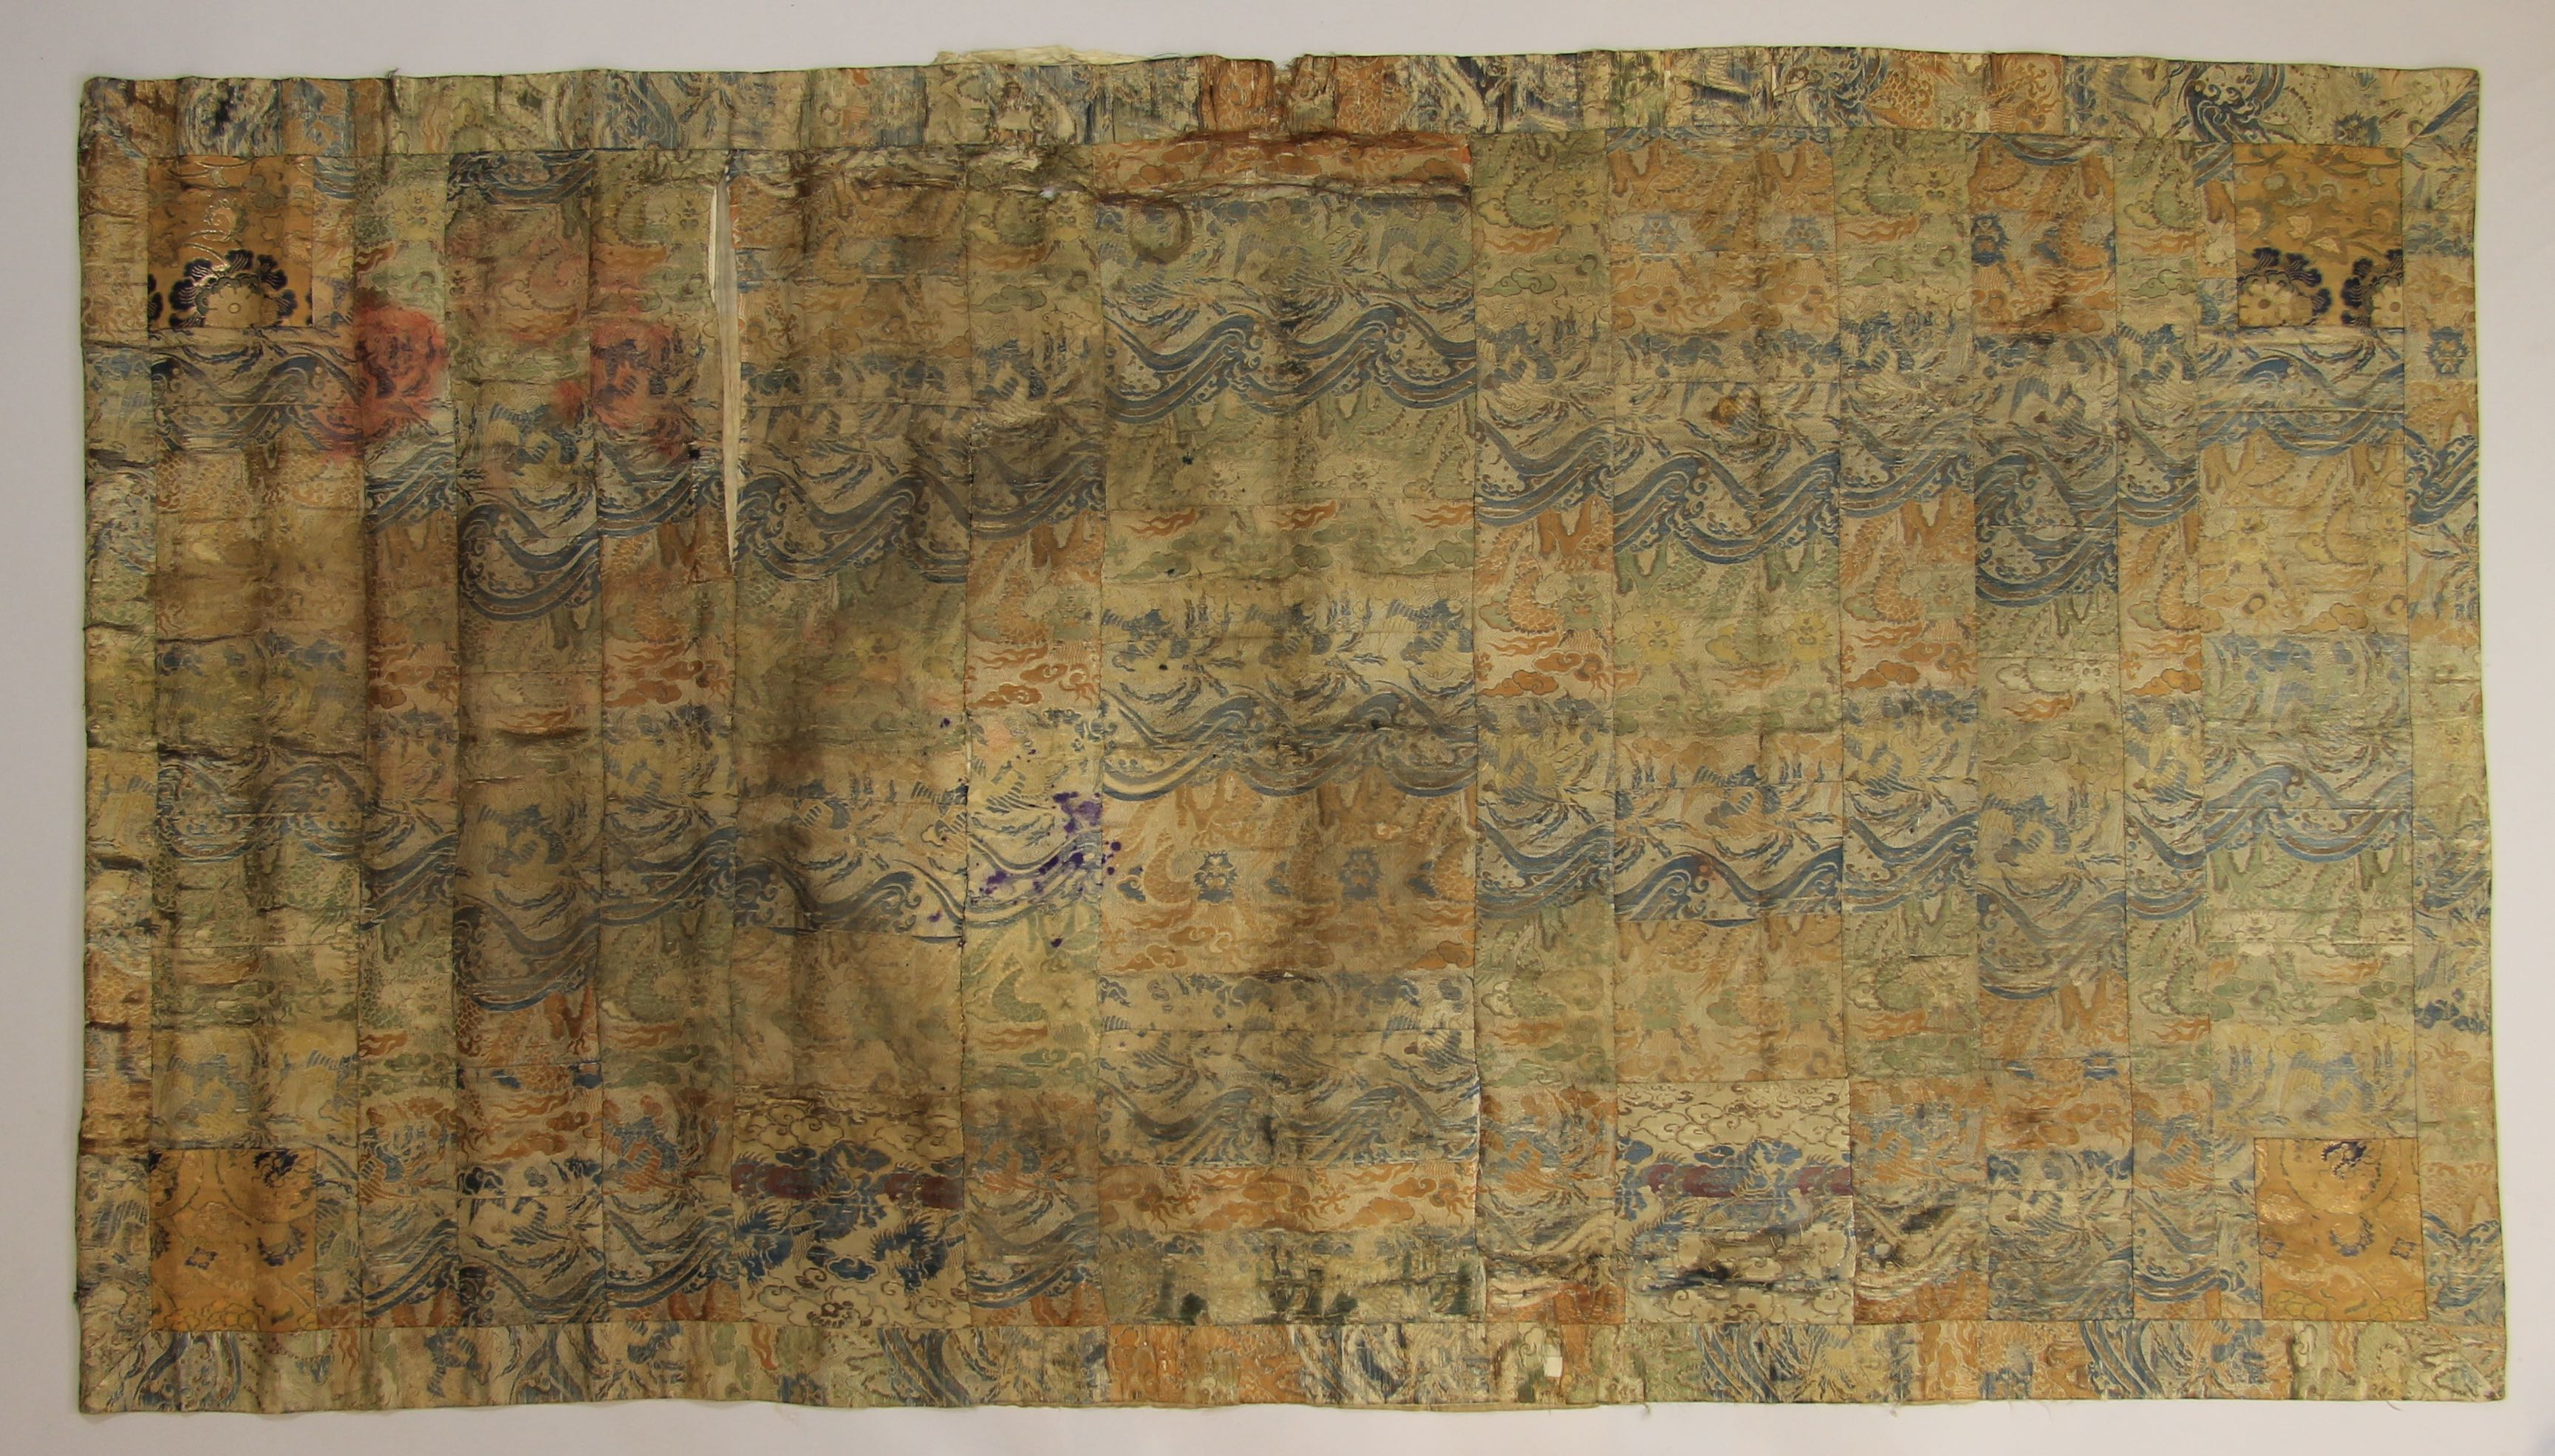 [Brocade panel? Kesi Robe?]